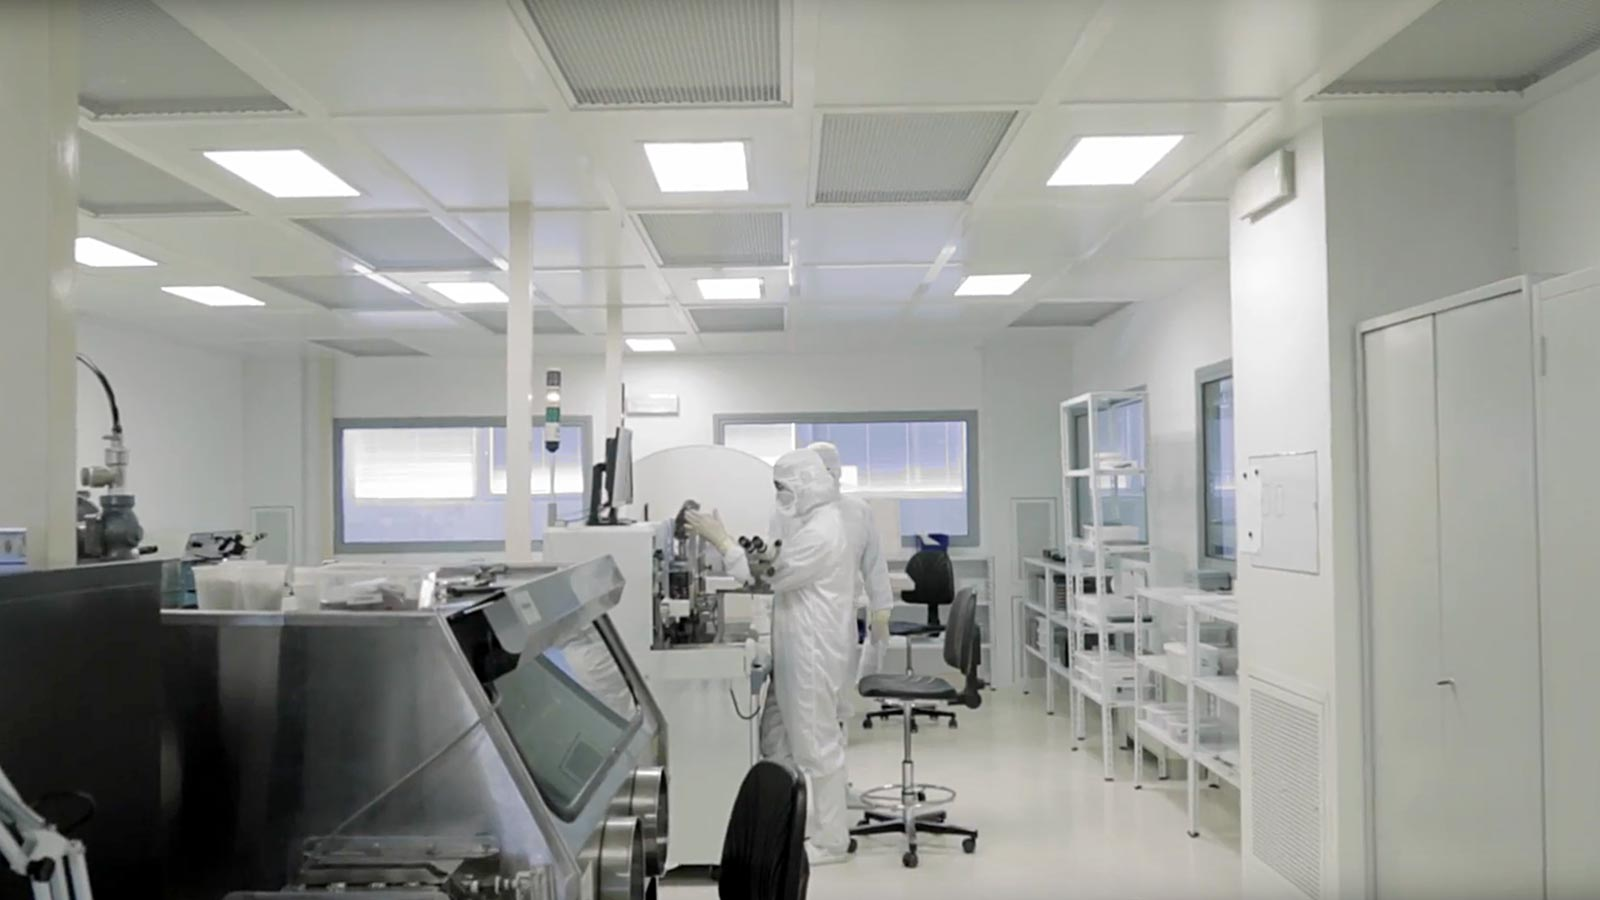 The UpSens laboratory where detectors and meters of environmental parameters are assembled